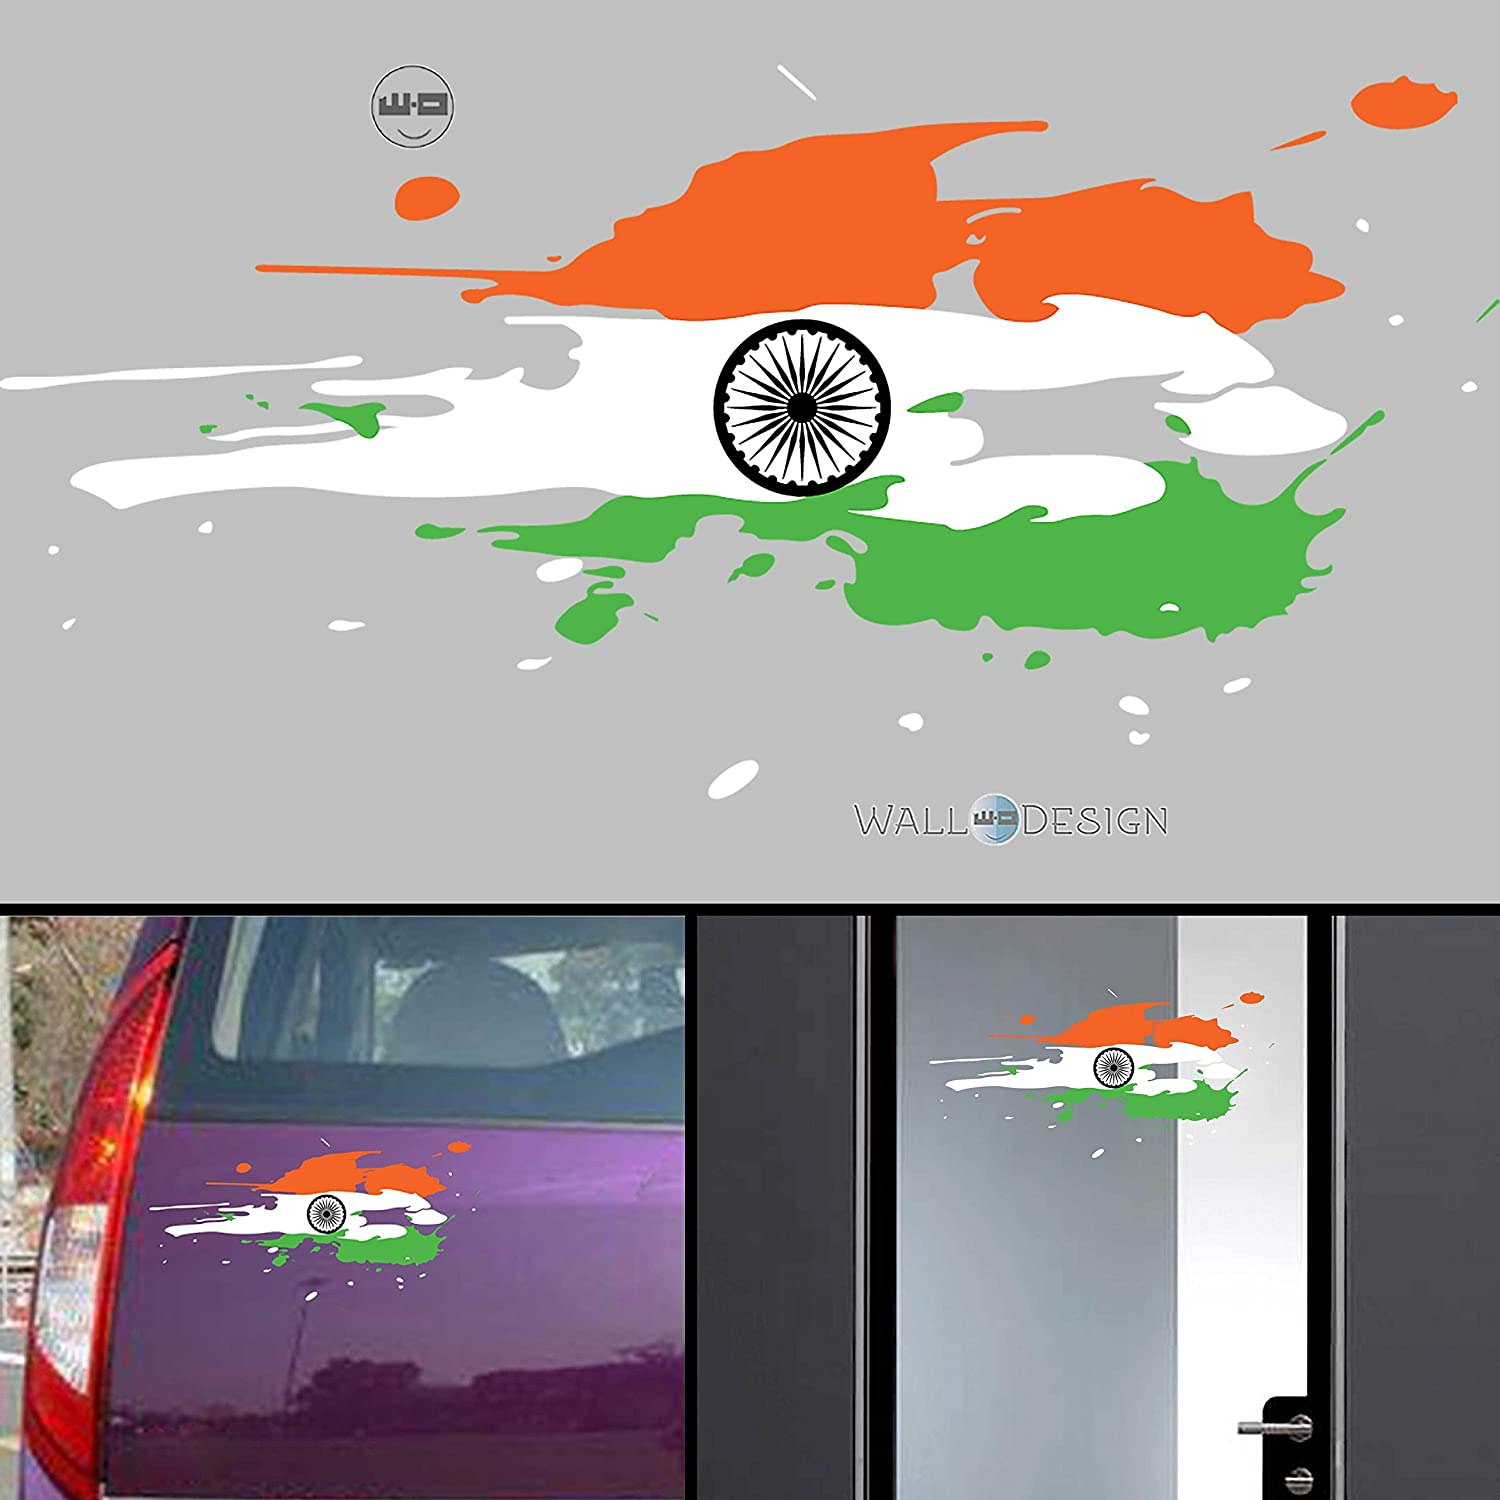 Car sticker design in india - Walldesign India Flag Jai Bharath Flag Car Stickers For Body Glass Wall Colour Splash Design